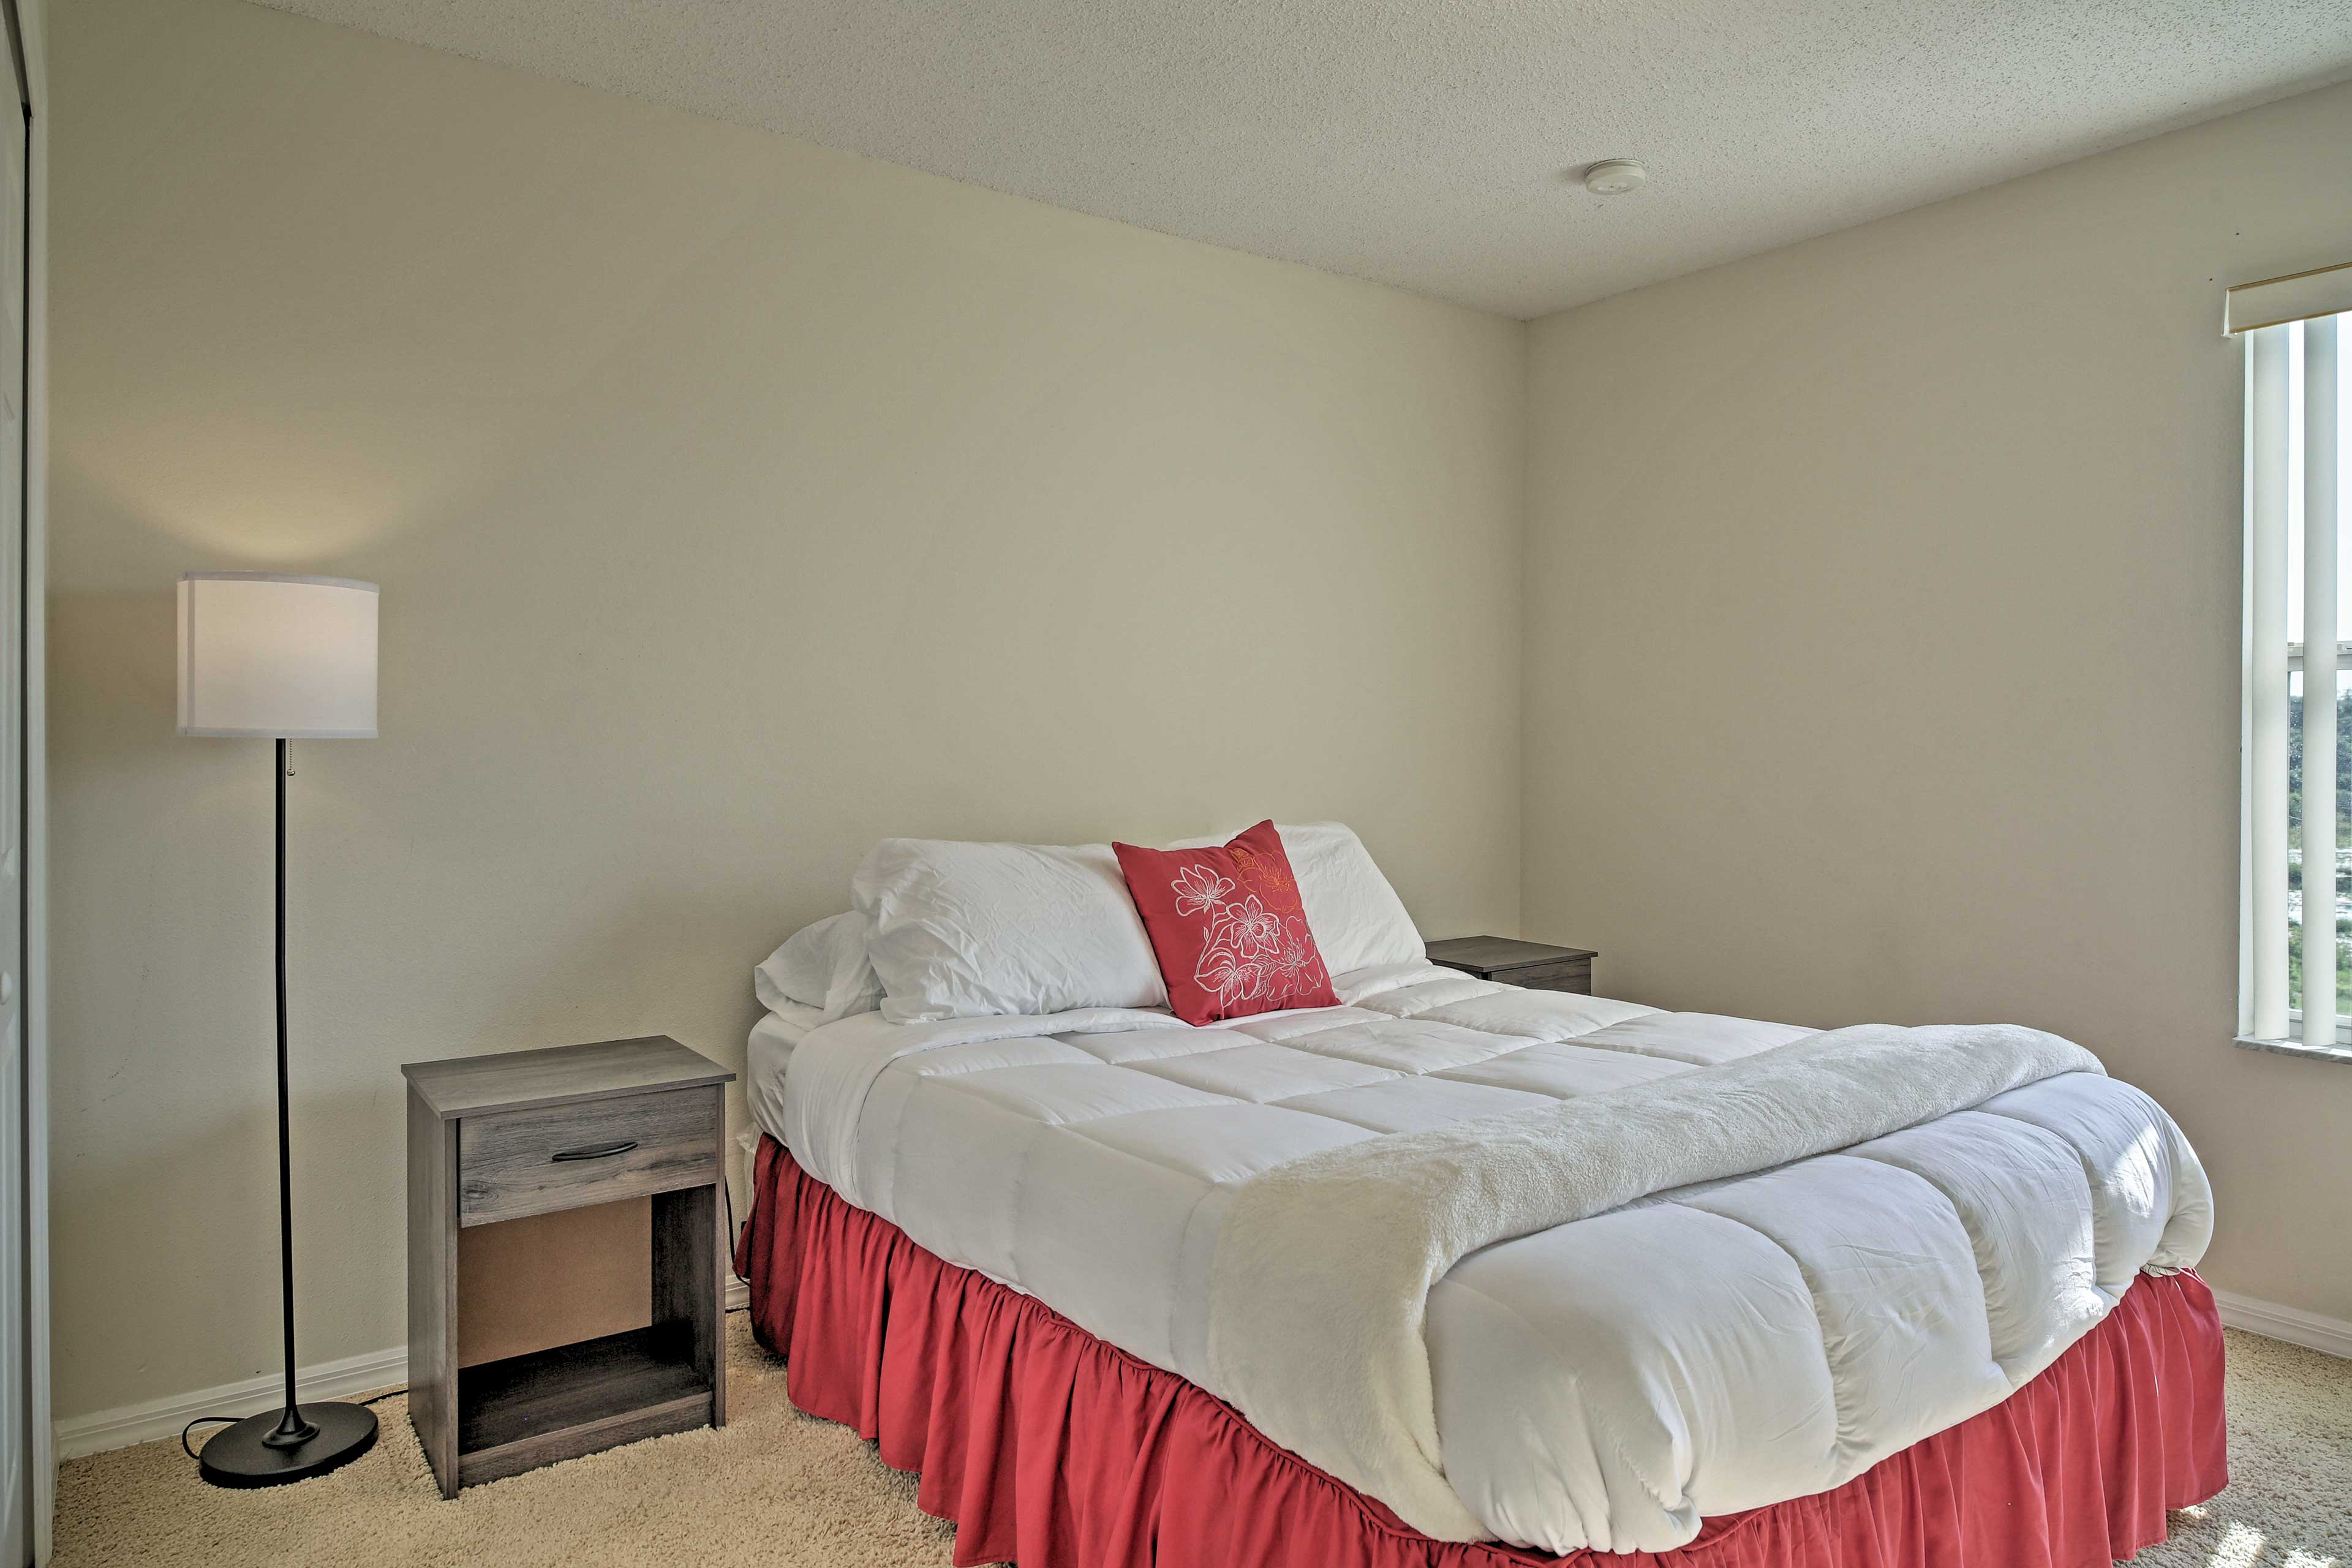 The fourth bedroom includes a queen bed for 2.